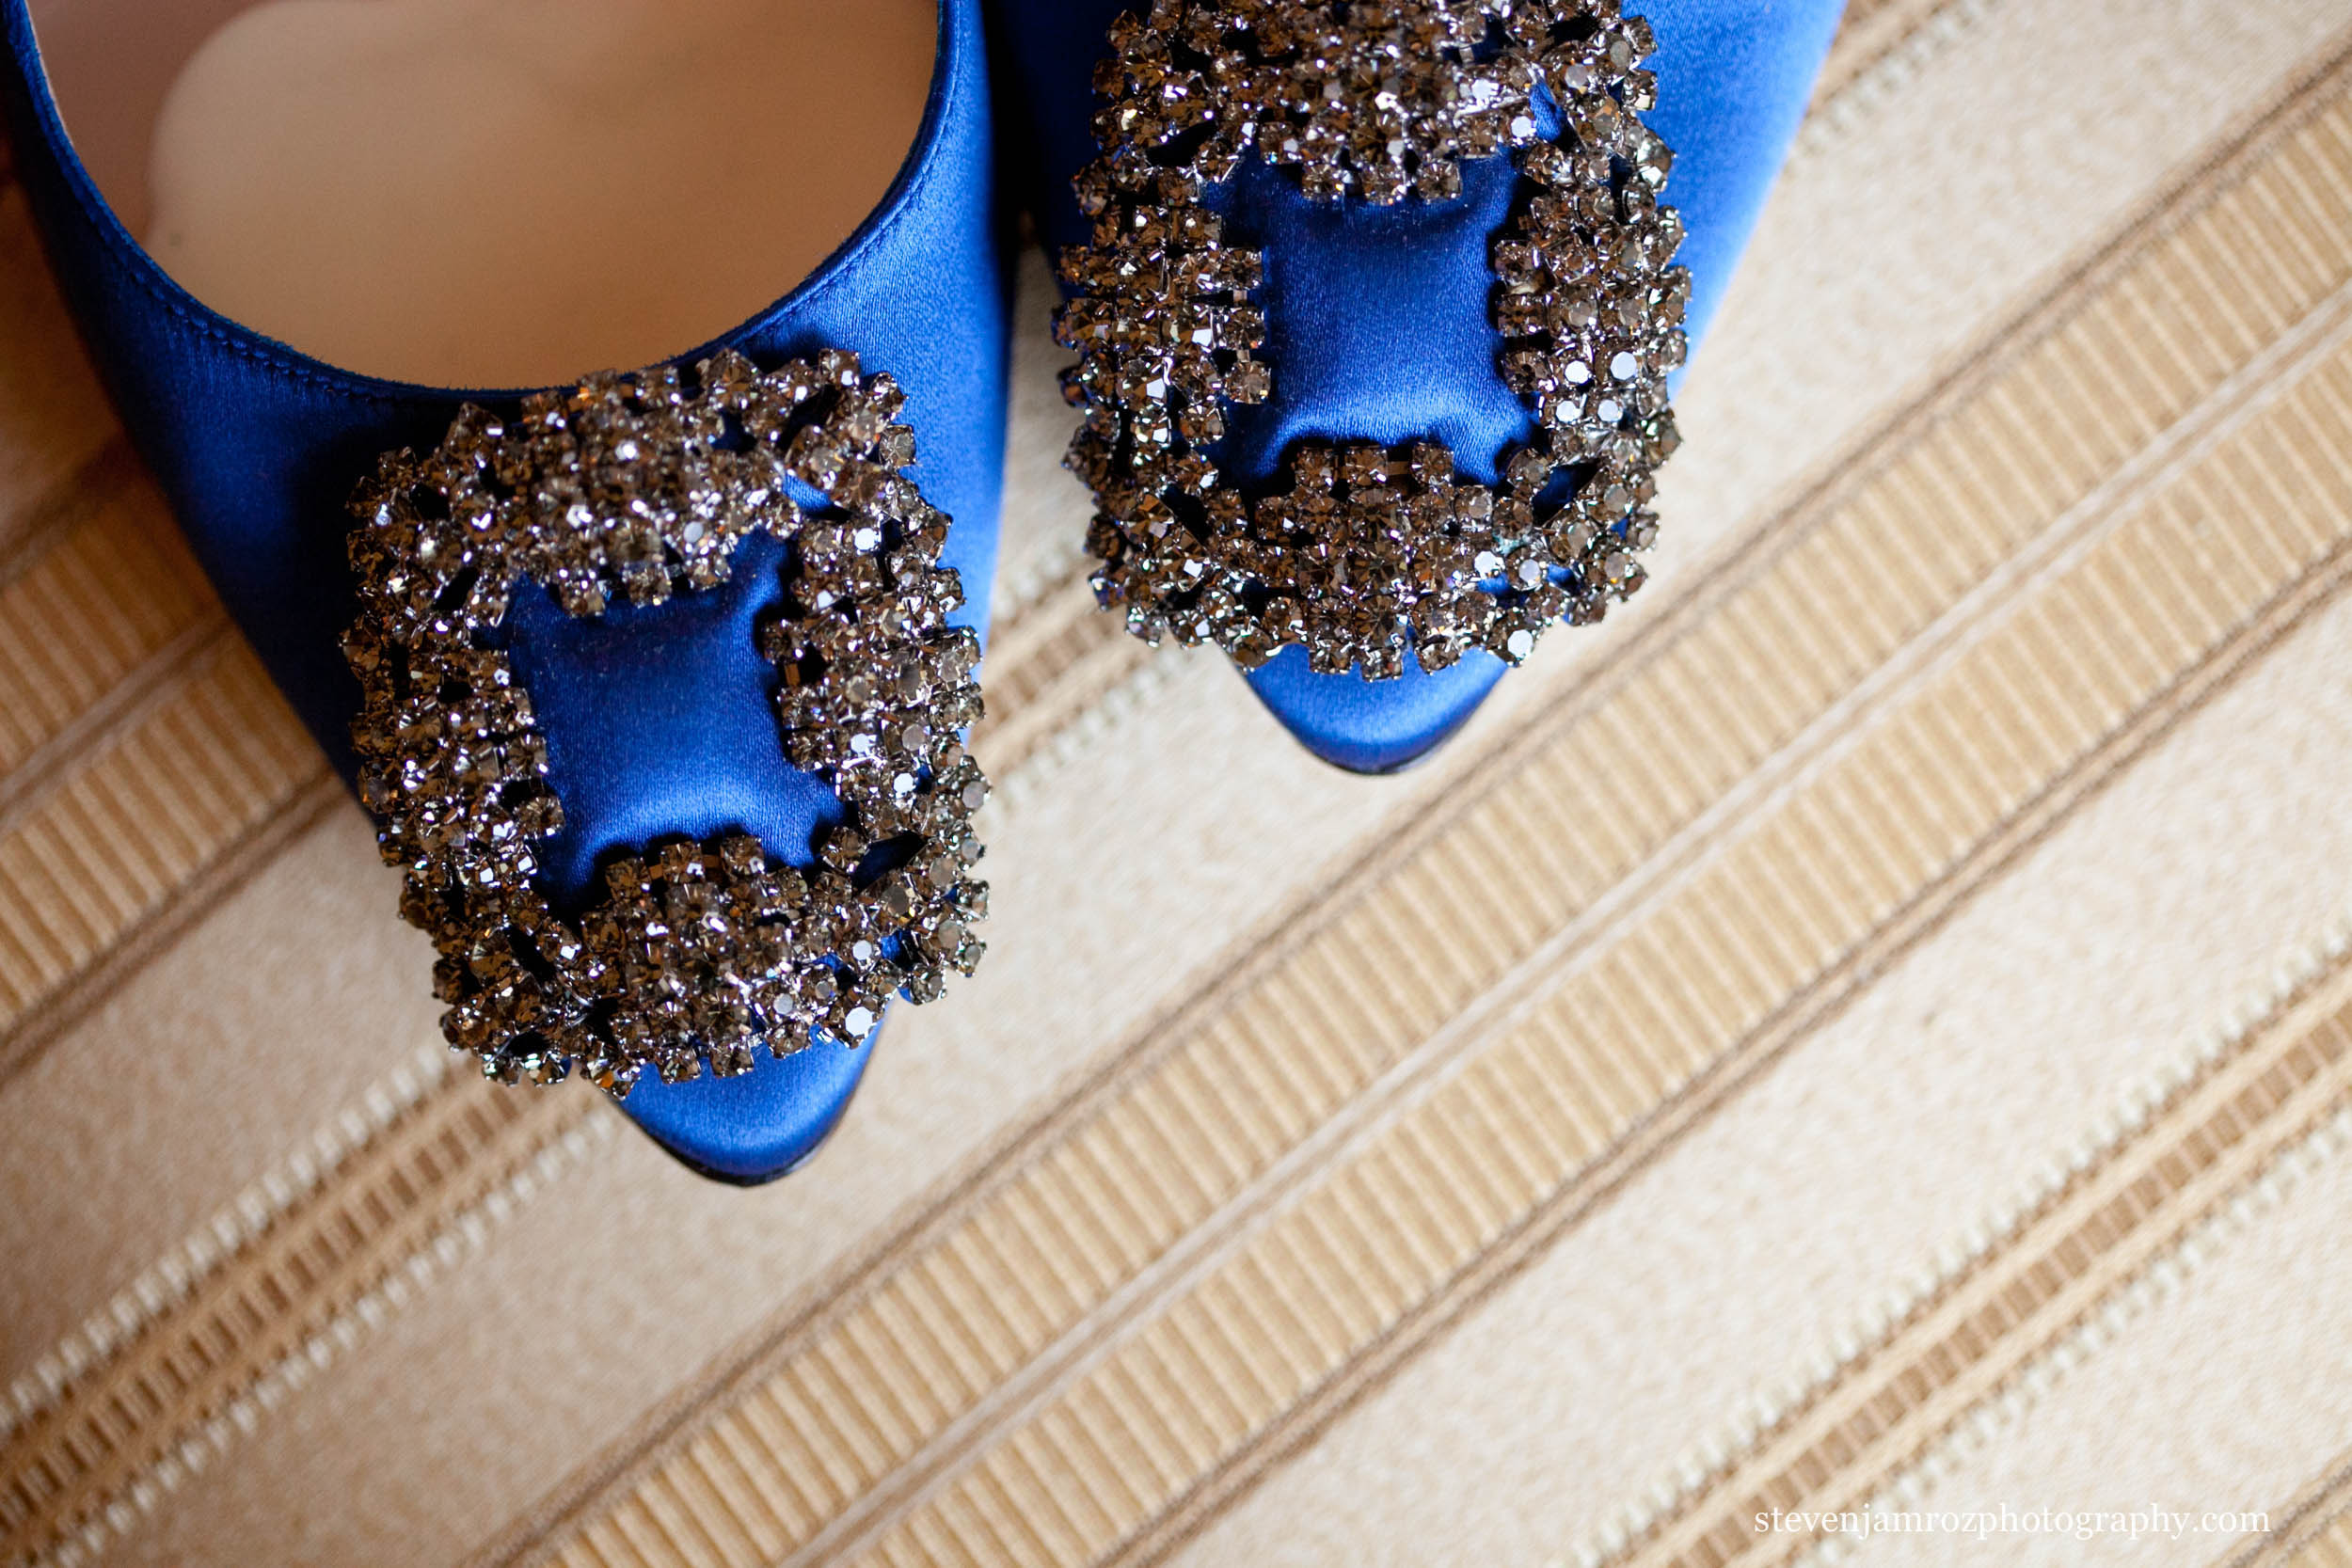 something-blue-shoes-nc-wedding-steven-jamroz-photography-0562.jpg